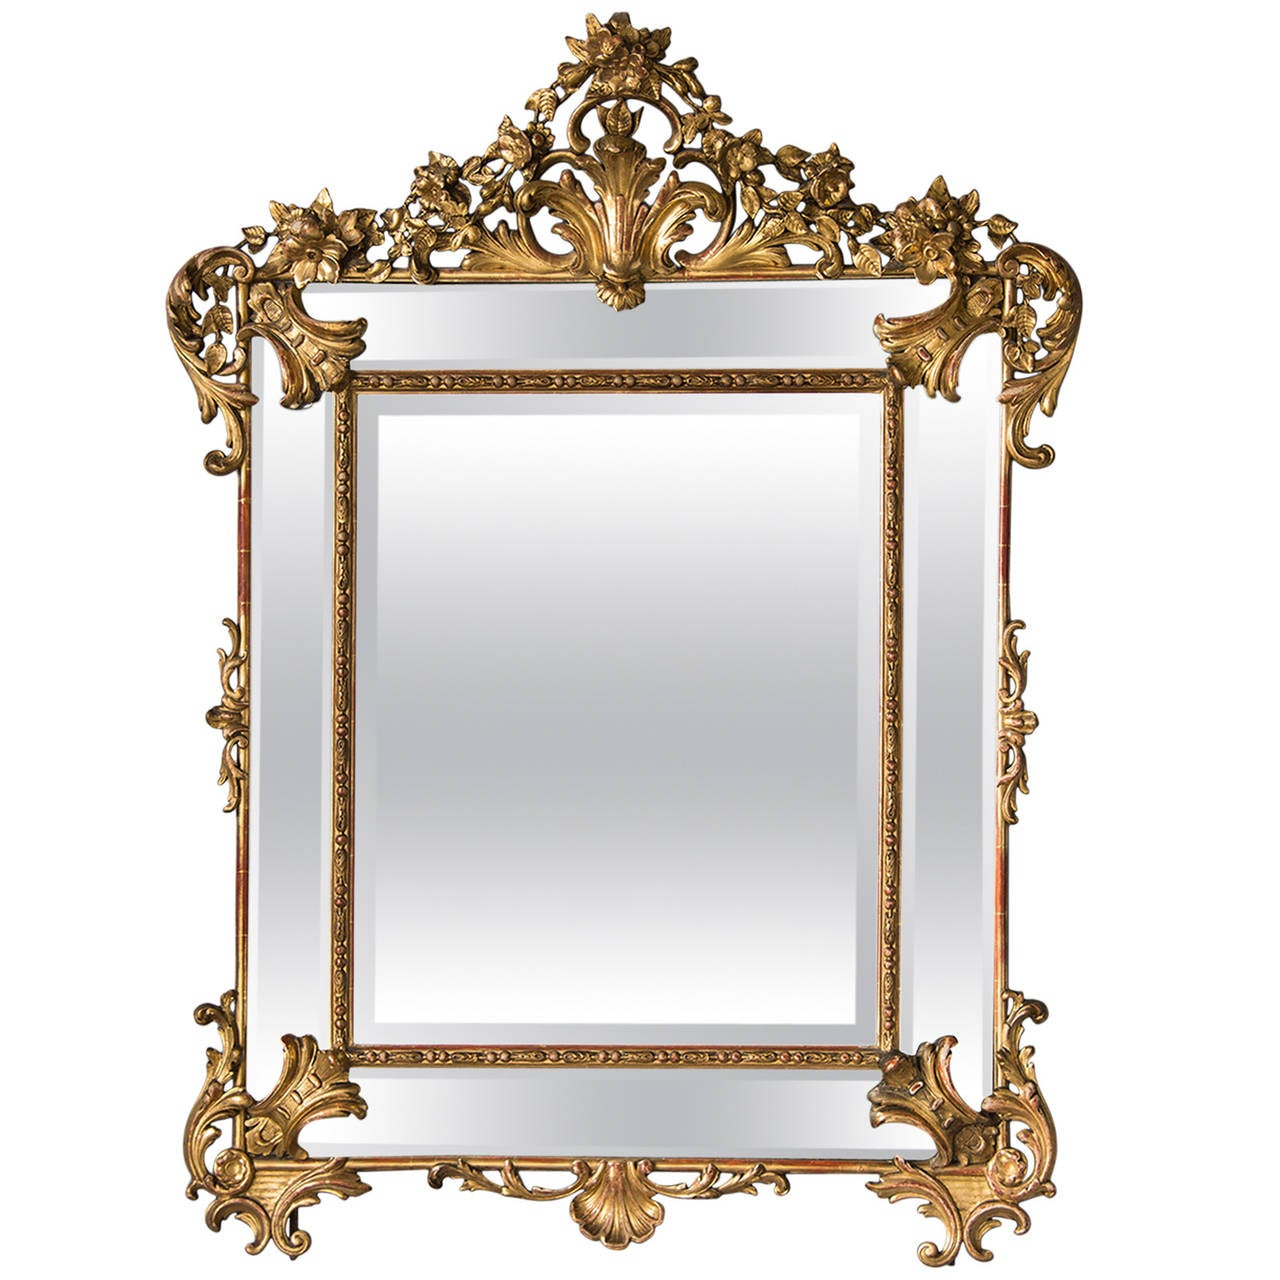 Bold Antique French Régence Style Pareclose Gold Leaf Mirror, circa 1890